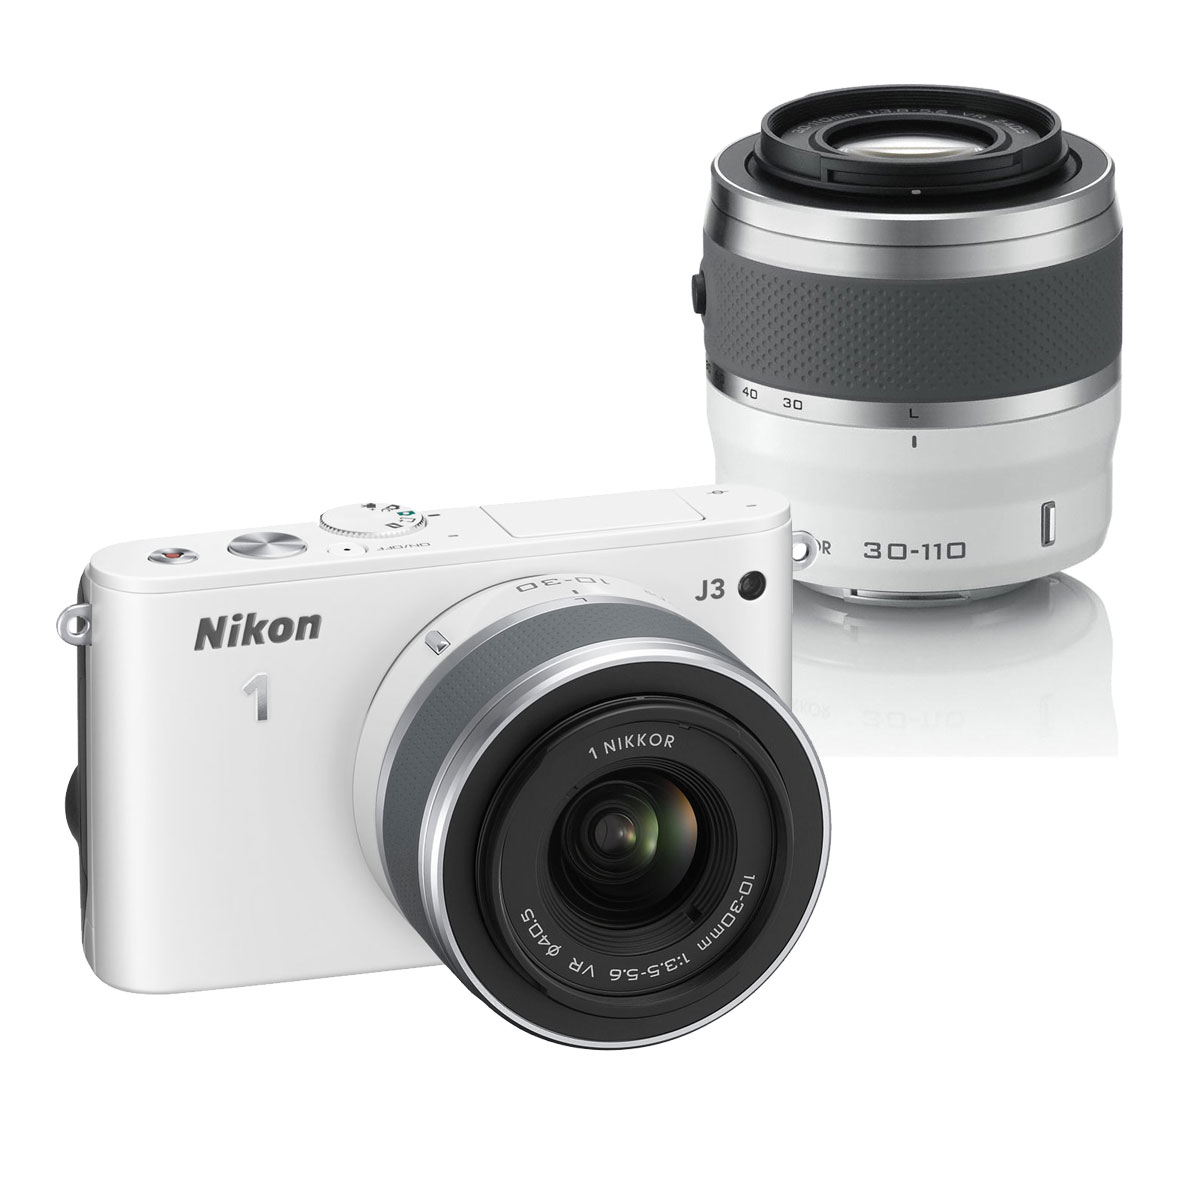 nikon 1 j3 kit zoom avec deux objectifs blanc appareil. Black Bedroom Furniture Sets. Home Design Ideas